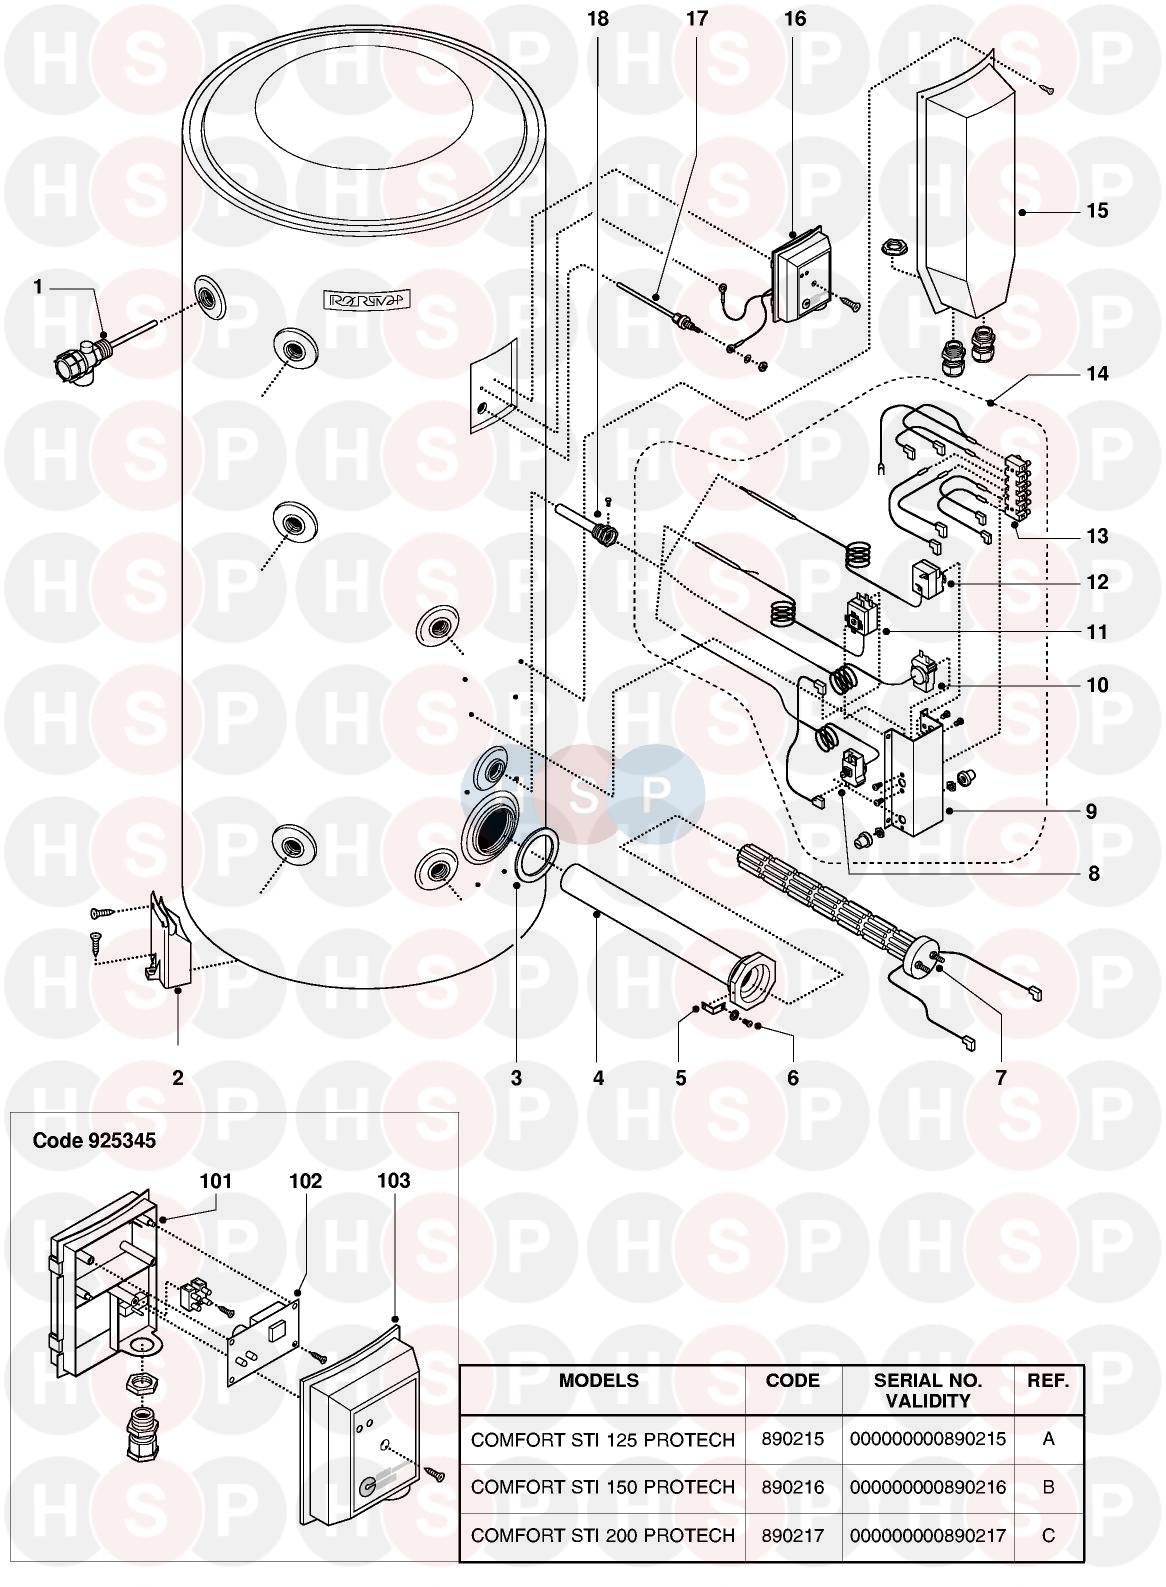 Ariston COMFORT STI 150 PROTECH Appliance Diagram